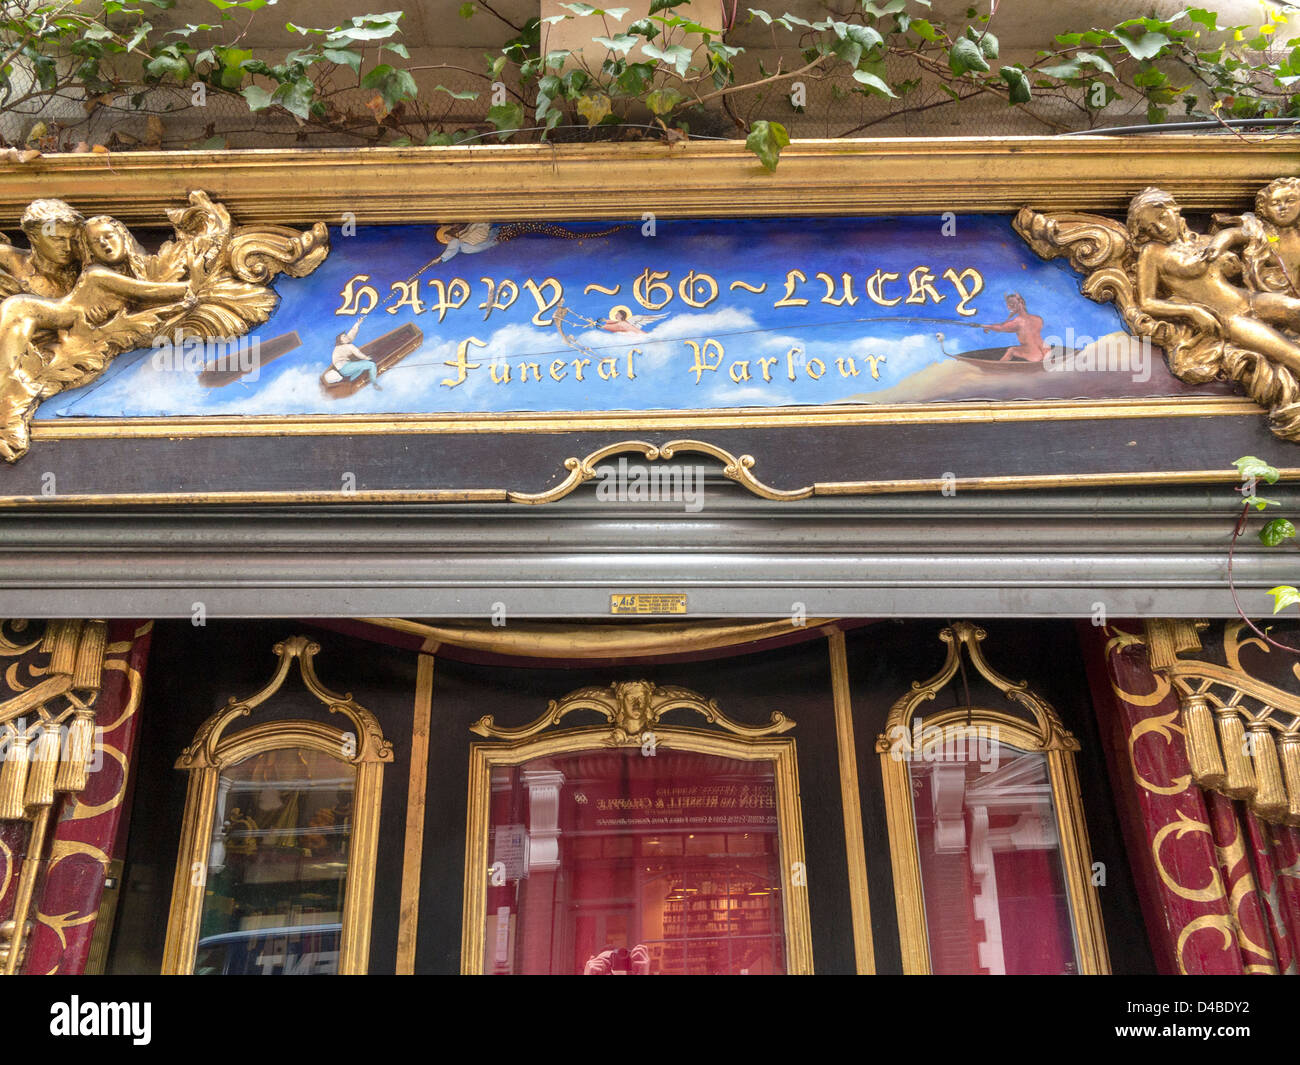 Happy-Go-Lucky Funeral Parlour in Drury Lane, London, England - Stock Image